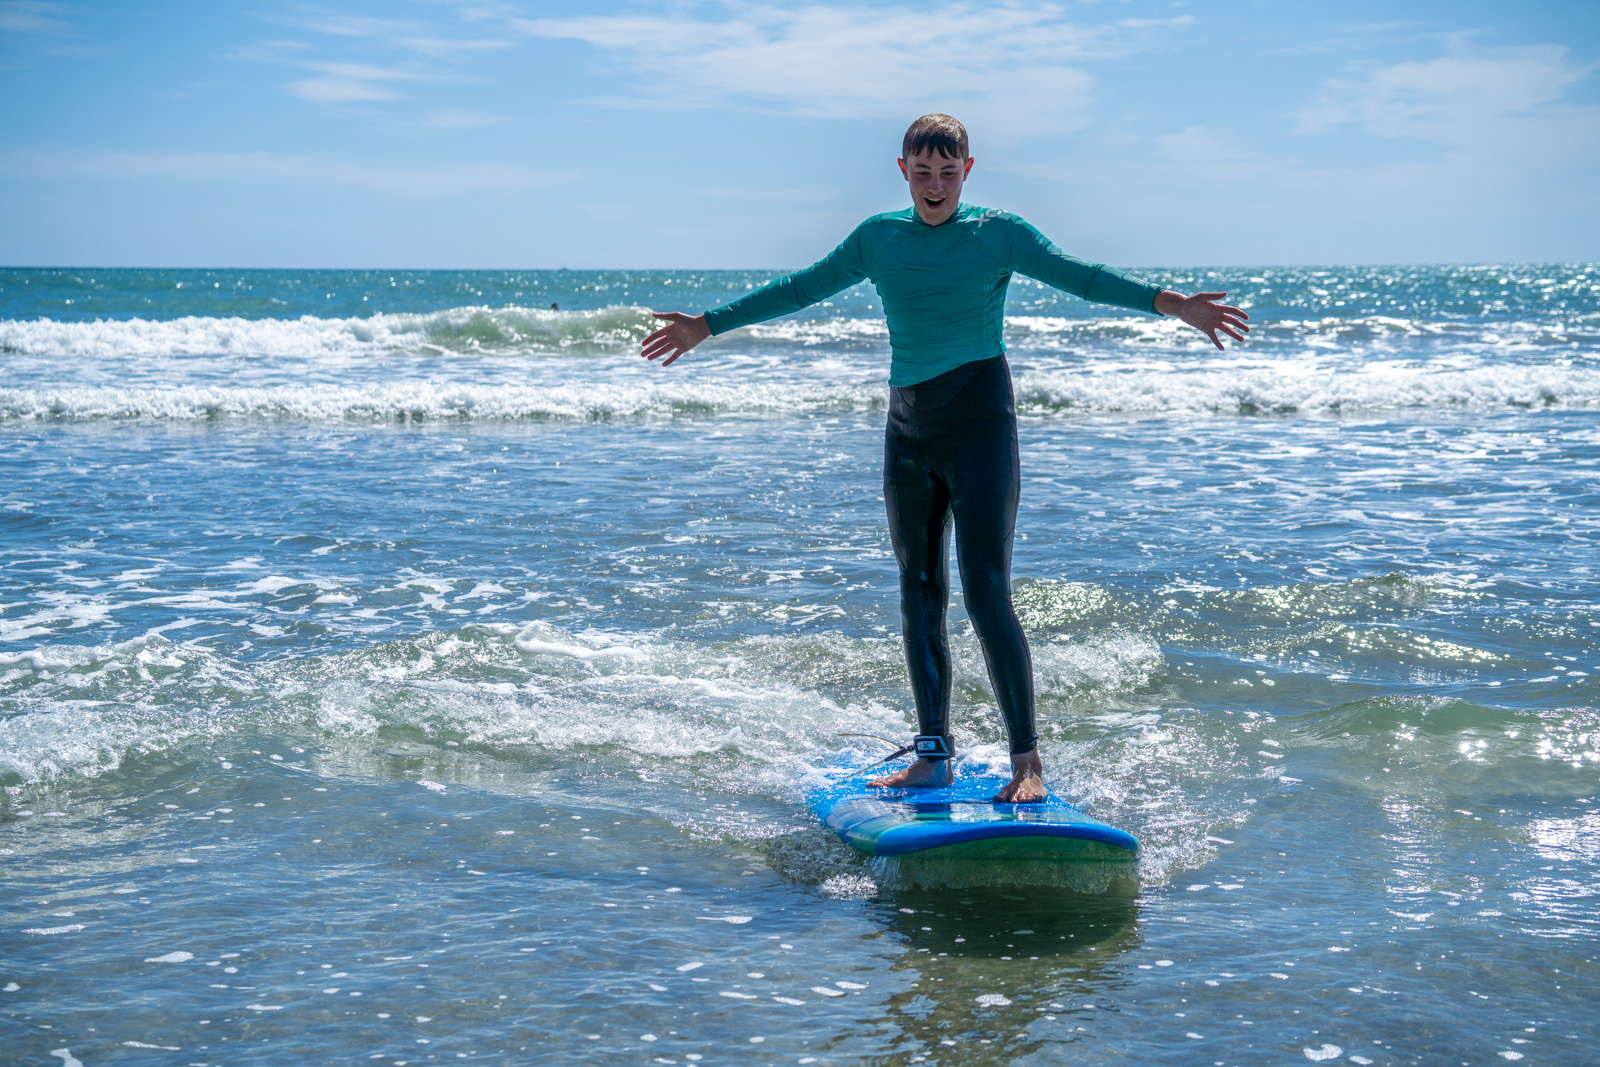 Catching waves at Ohope's West End